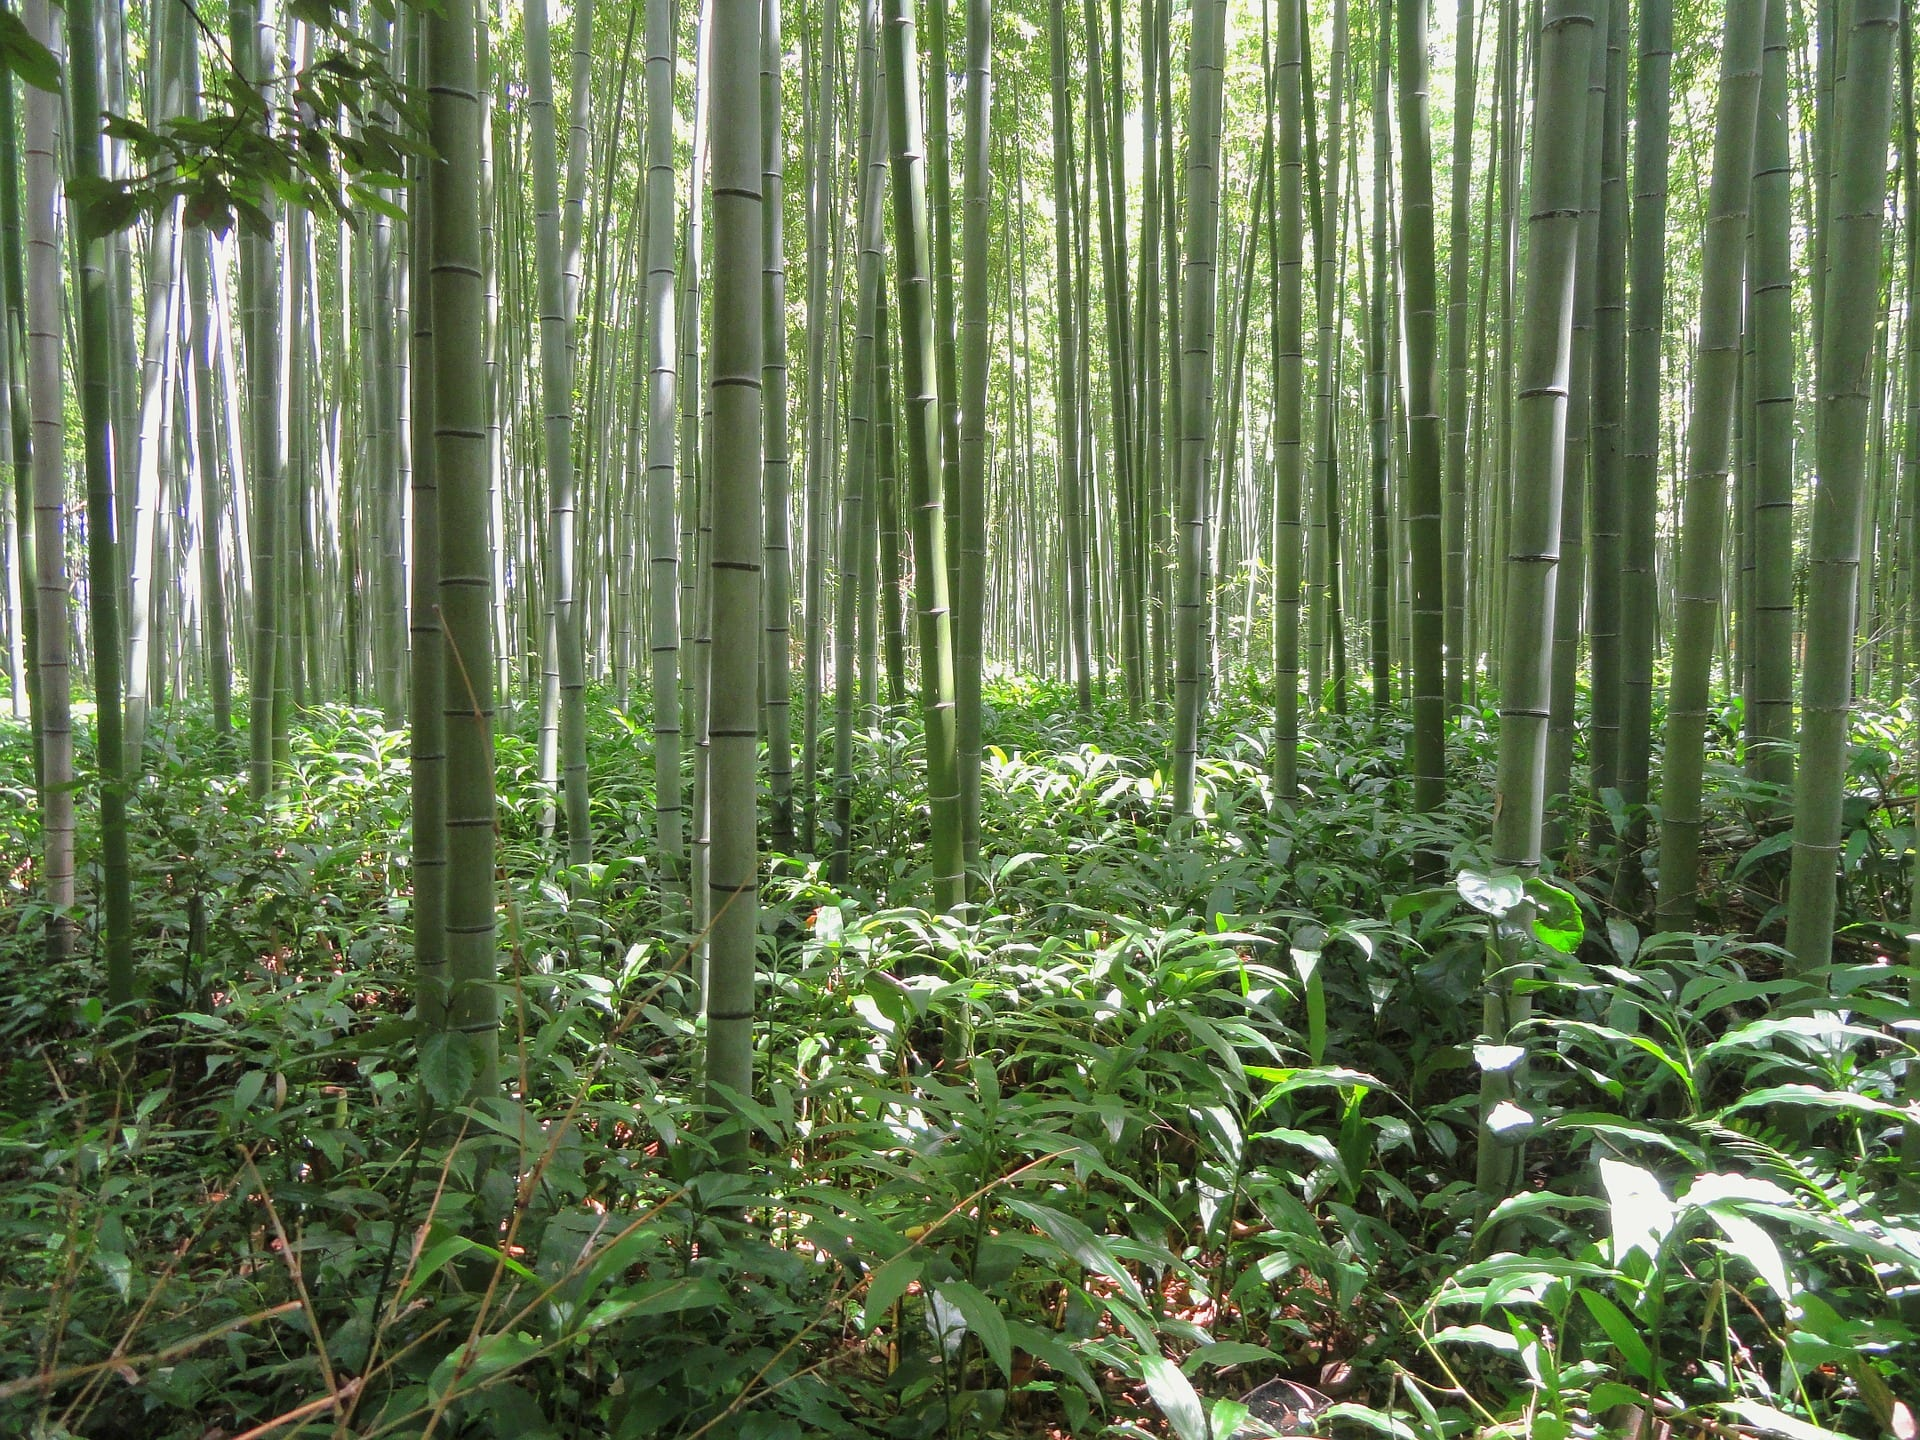 Bamboo growing in native Japan